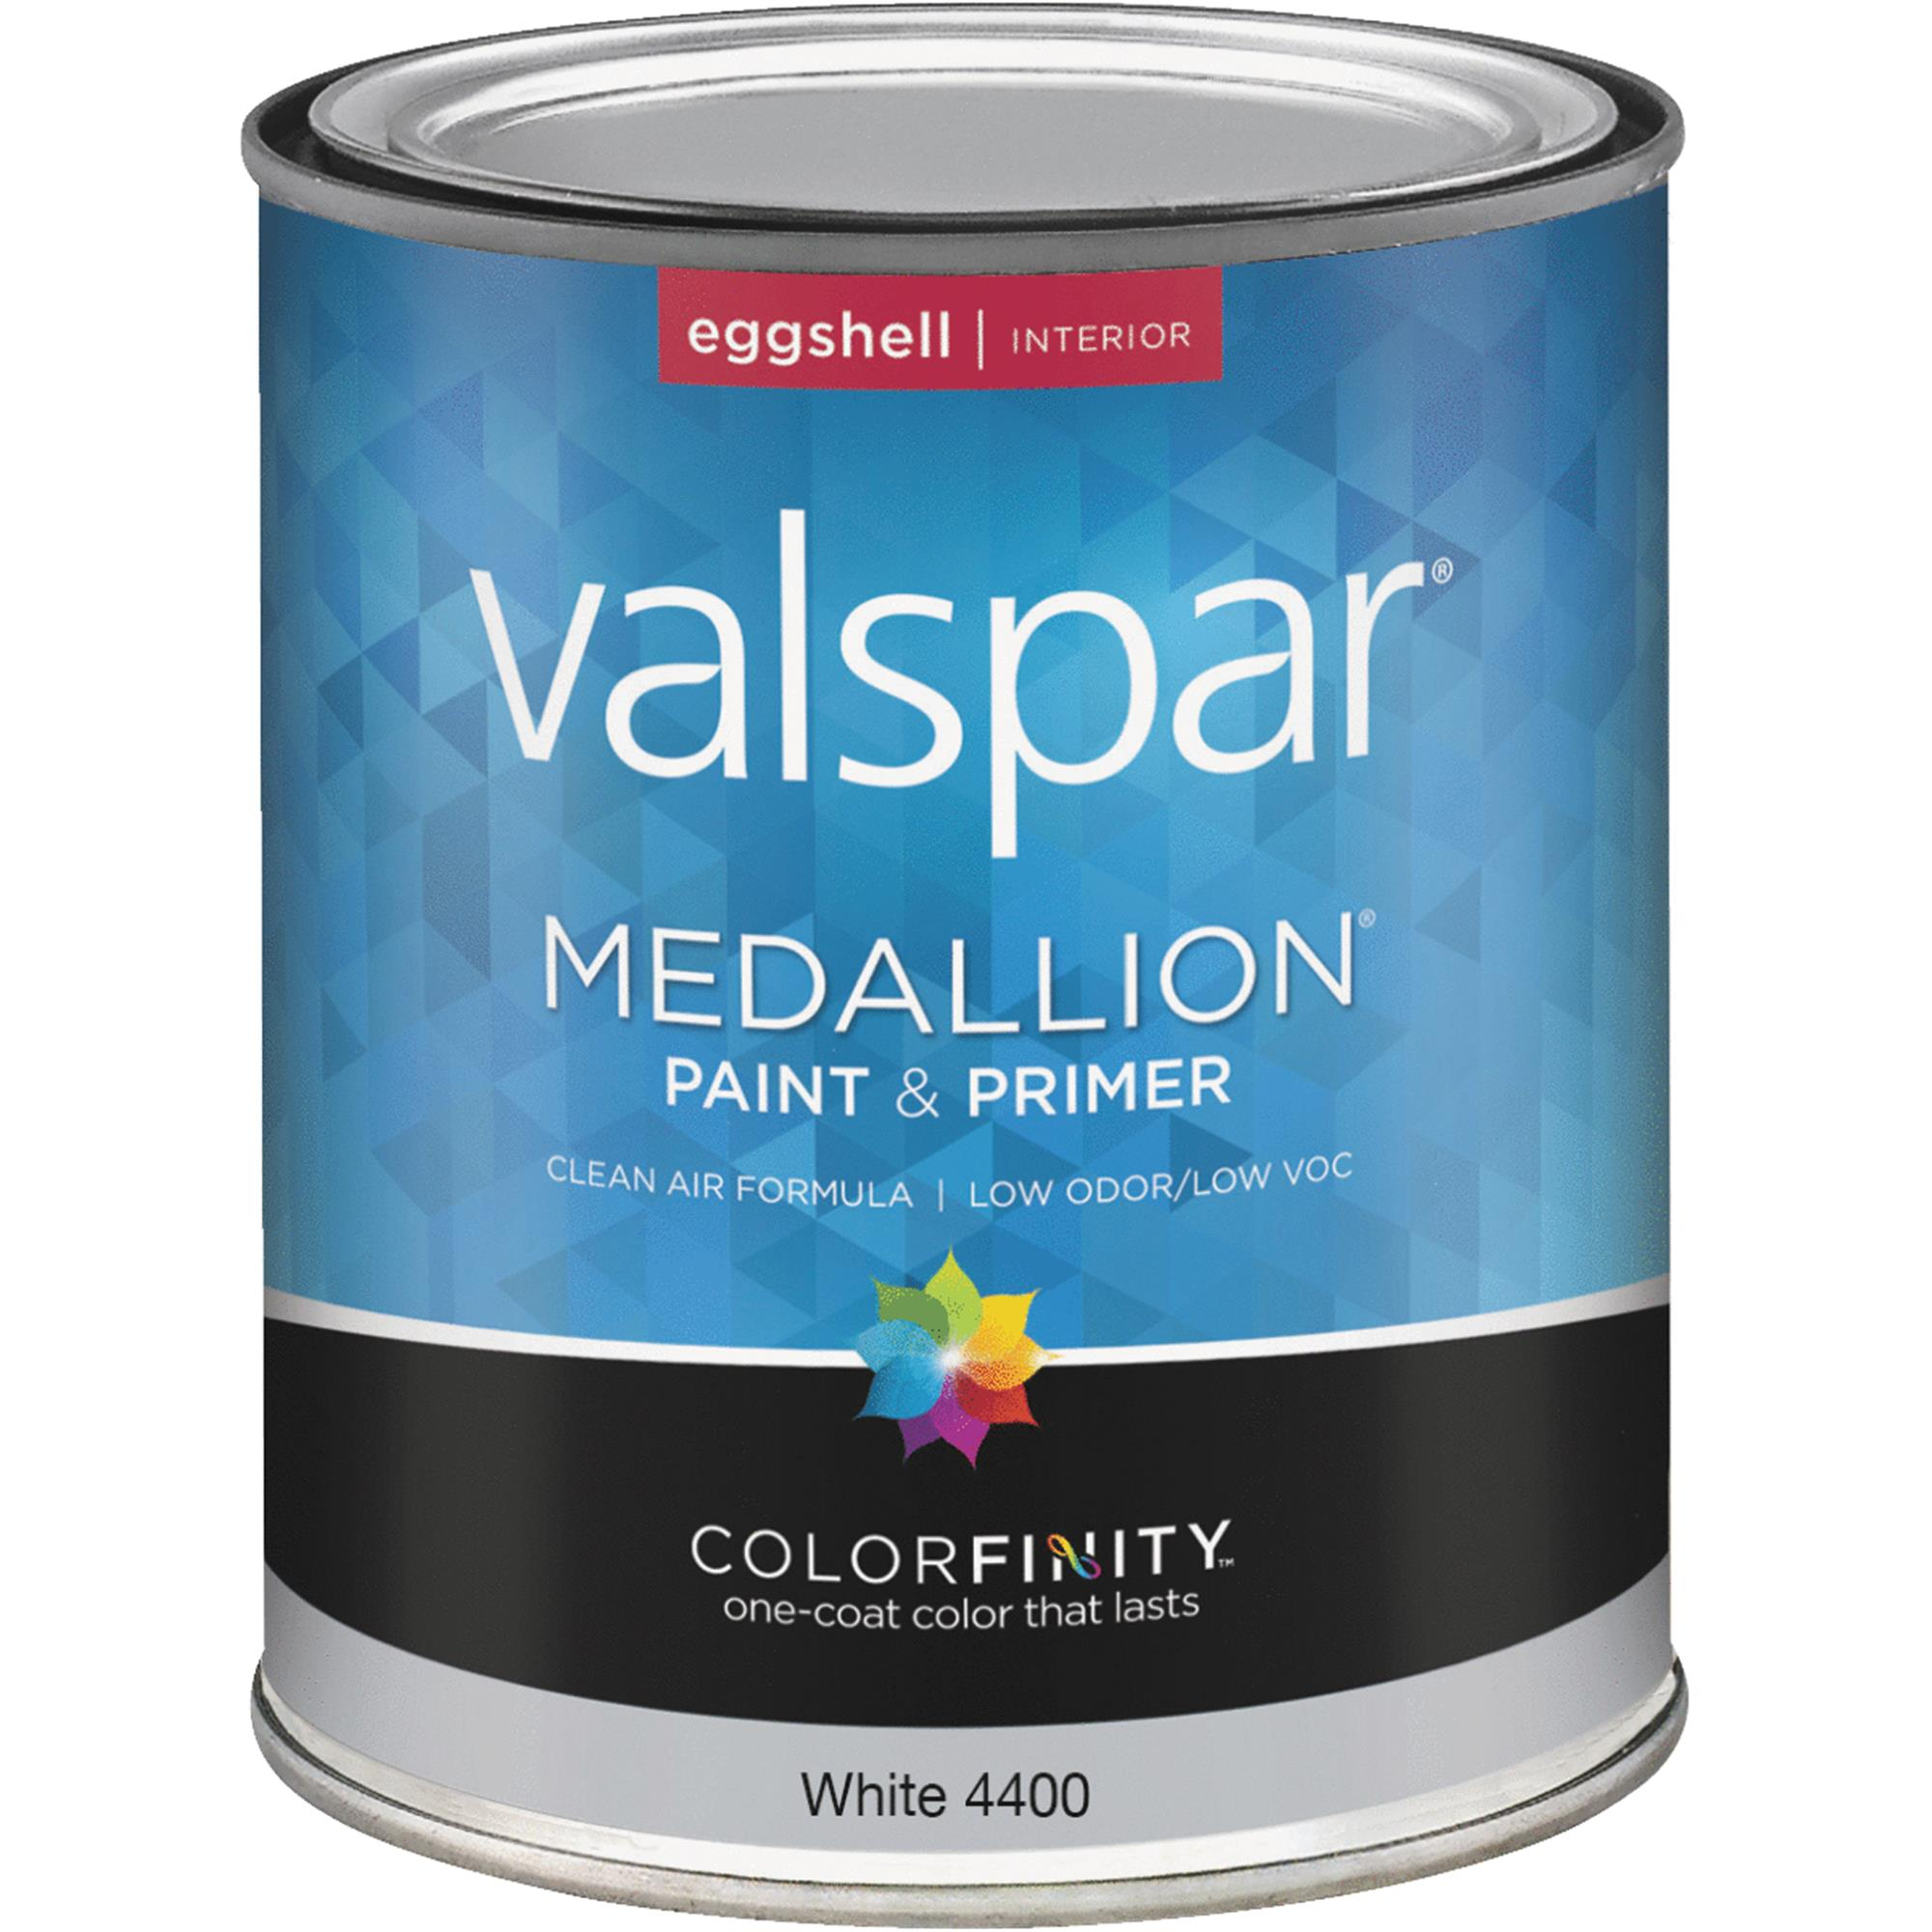 Valspar Medallion 100% Acrylic Paint & Primer Eggshell Interior Wall Paint